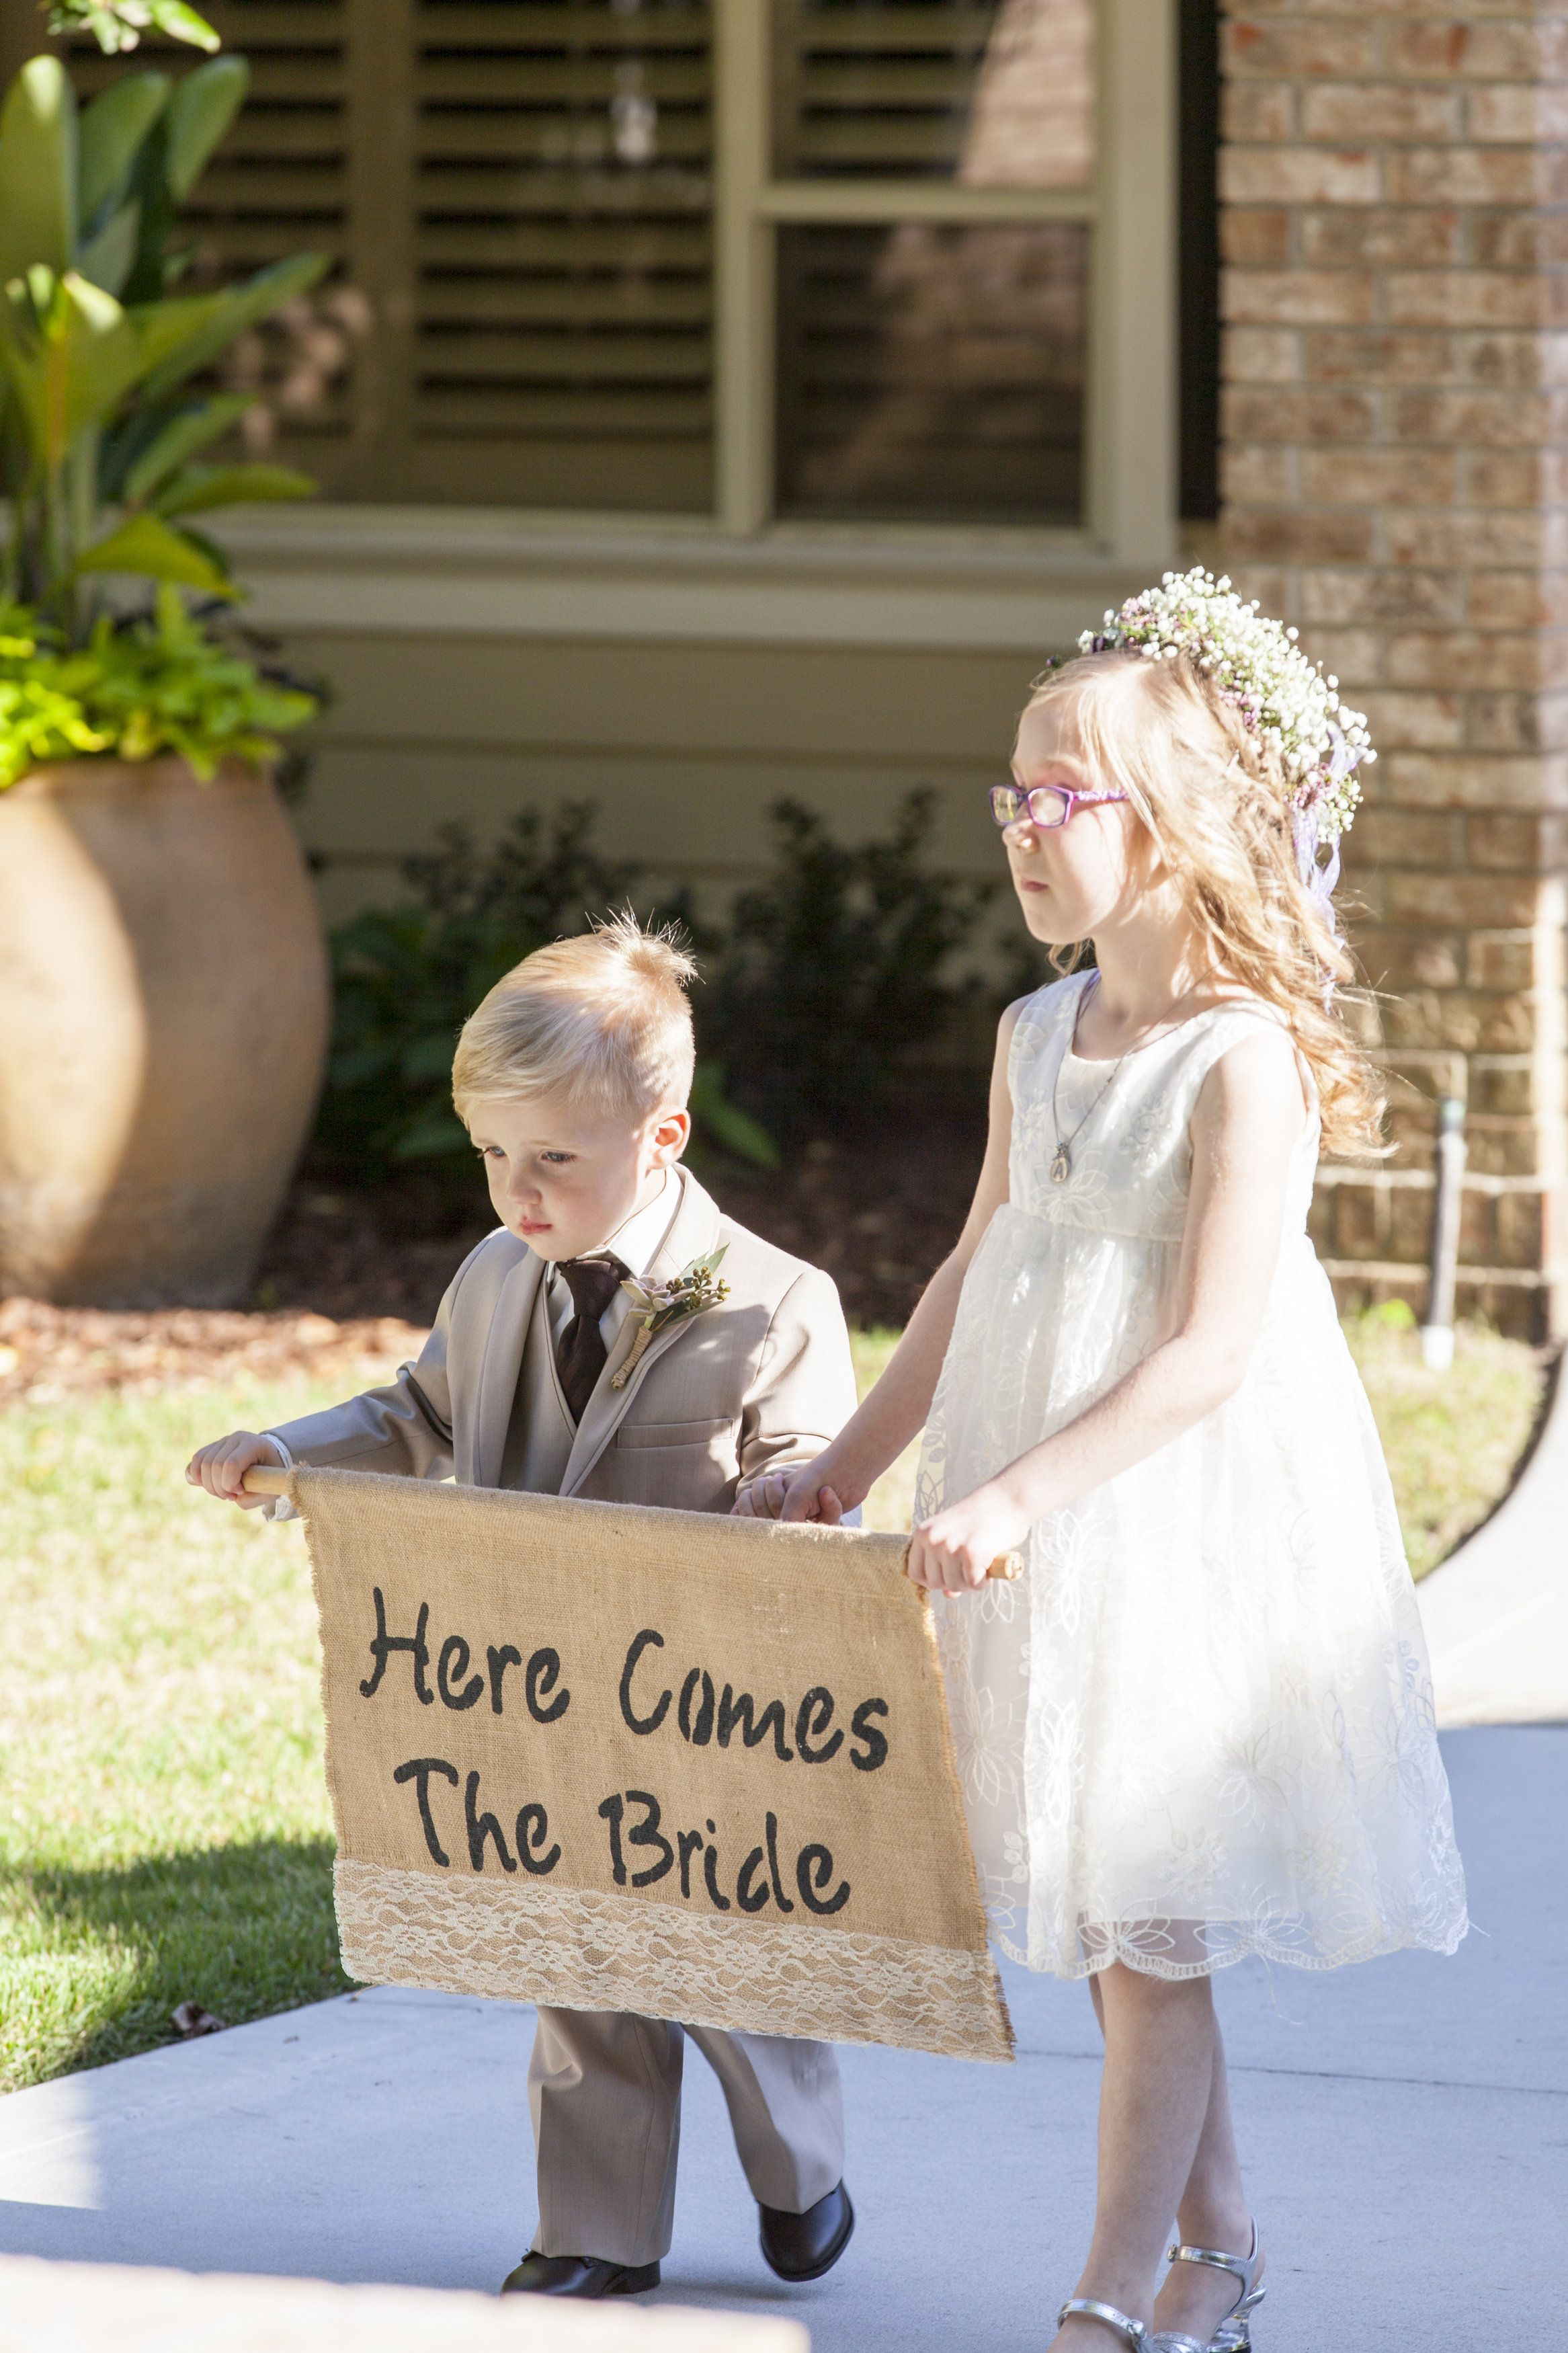 The Bride Is Preceded By The Ring Bearer And Flower Girl Carrying A Burlap And Lace Here Comes The Bride Sign Blumenkinder Hochzeit Braut Hier Kommt Die Braut